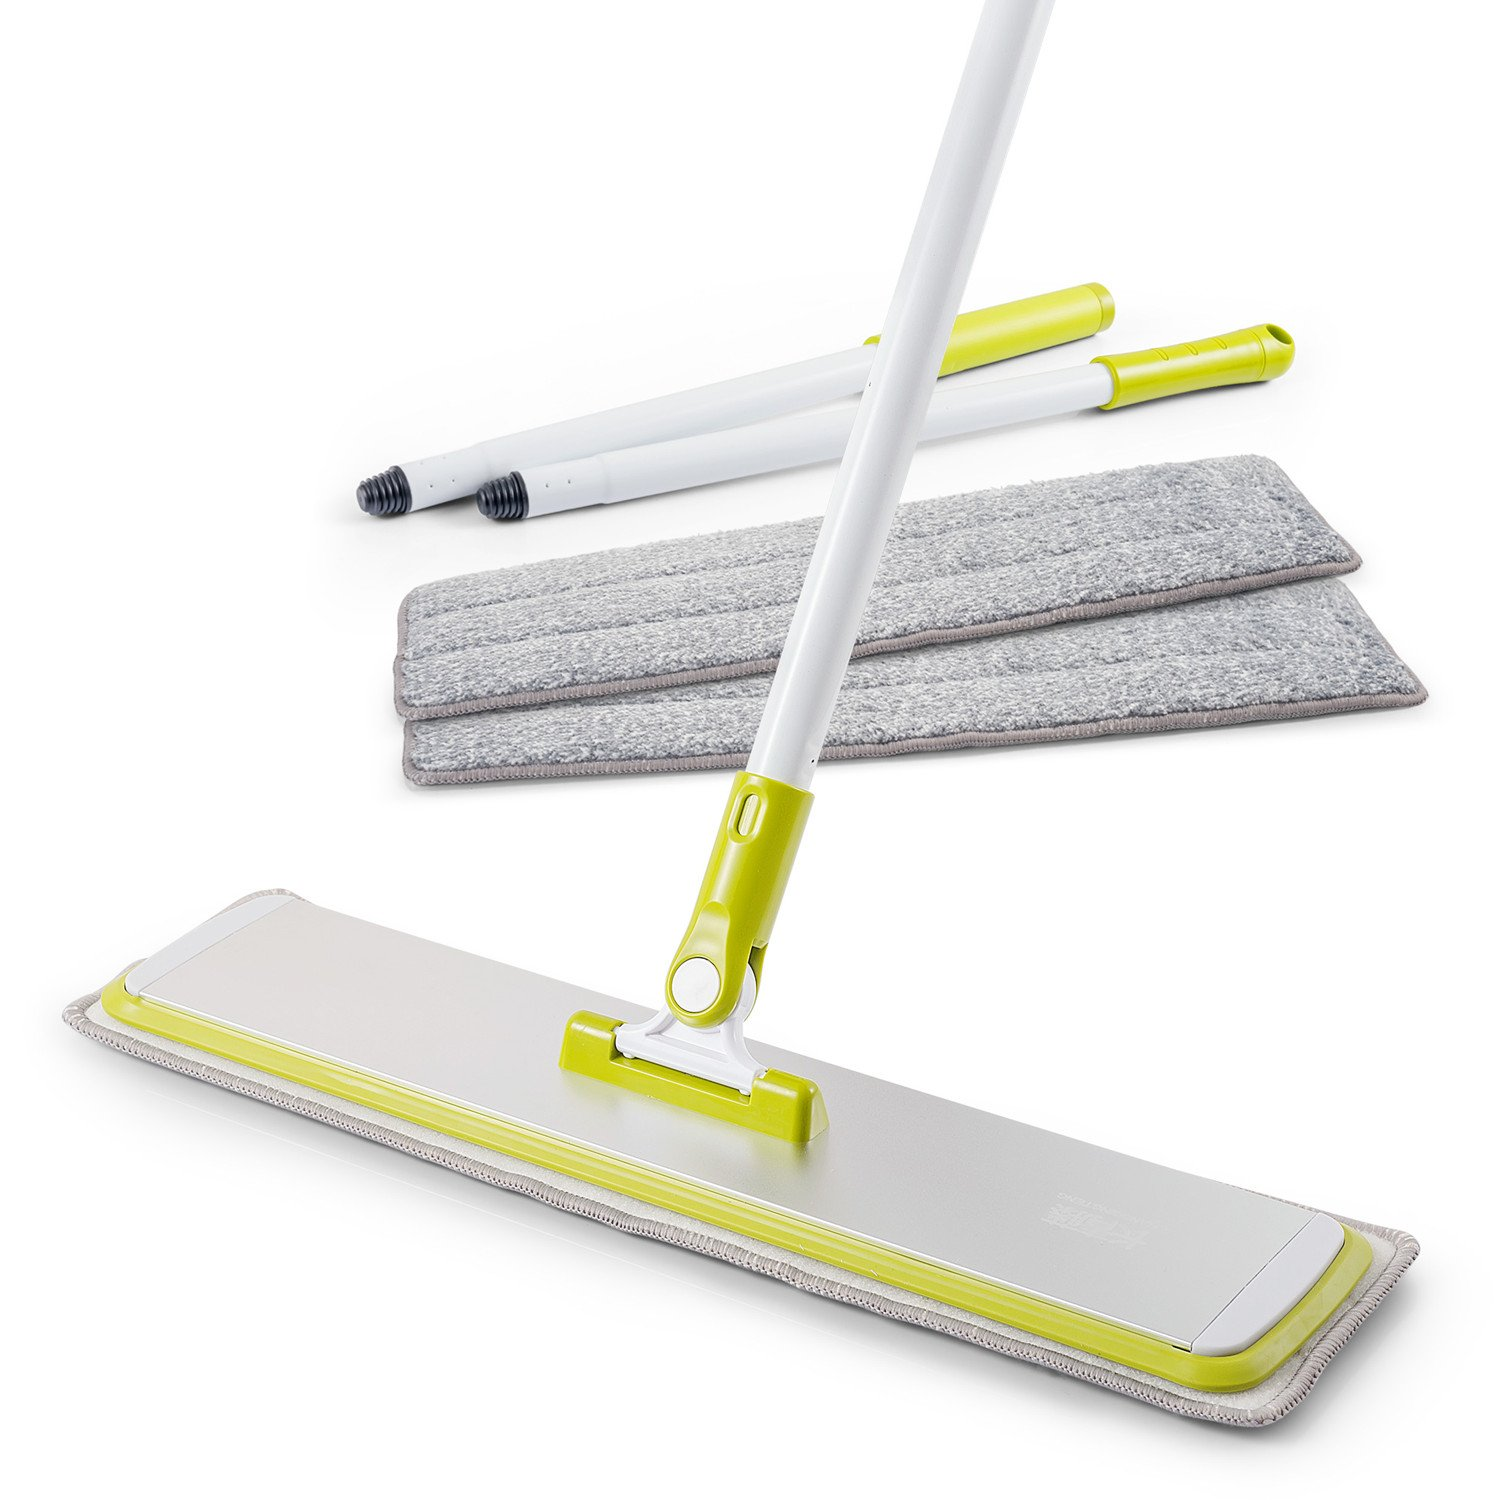 Microfiber Hardwood Floor Mop Kit with 3 Reusable Washable Pads, 360 Degree Handle Flat Mop for Wet and Dry Wood Floor Cleaning, Kitchen, Bathroom, Home, Office, Hardwood, Laminate, Tiles (18.11inch)